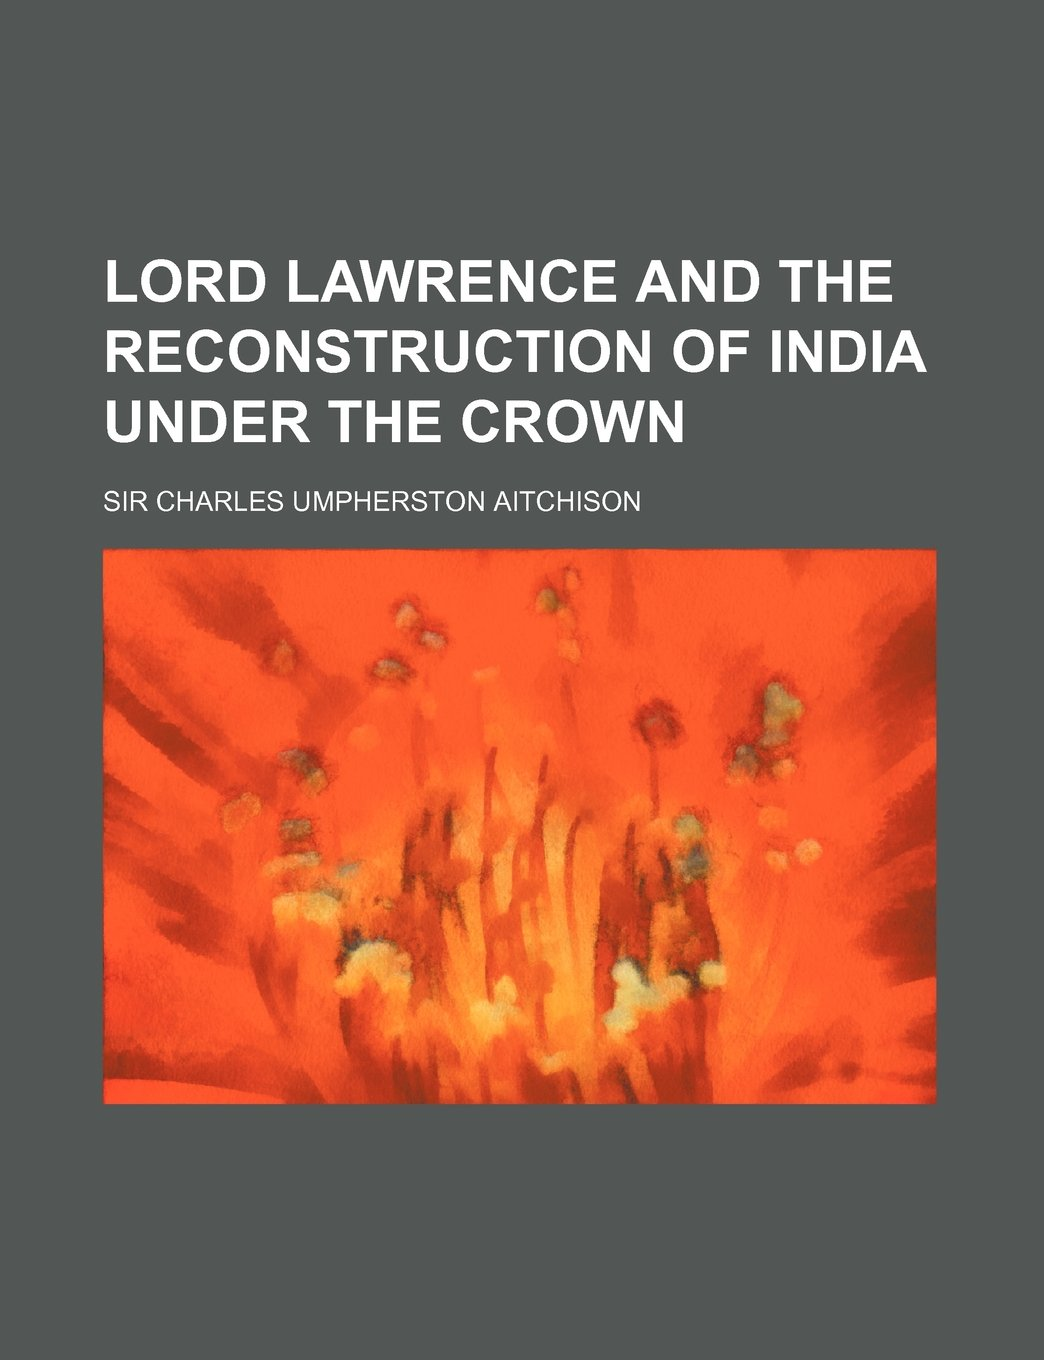 Buy Lord Lawrence and the Reconstruction of India Under the Crown